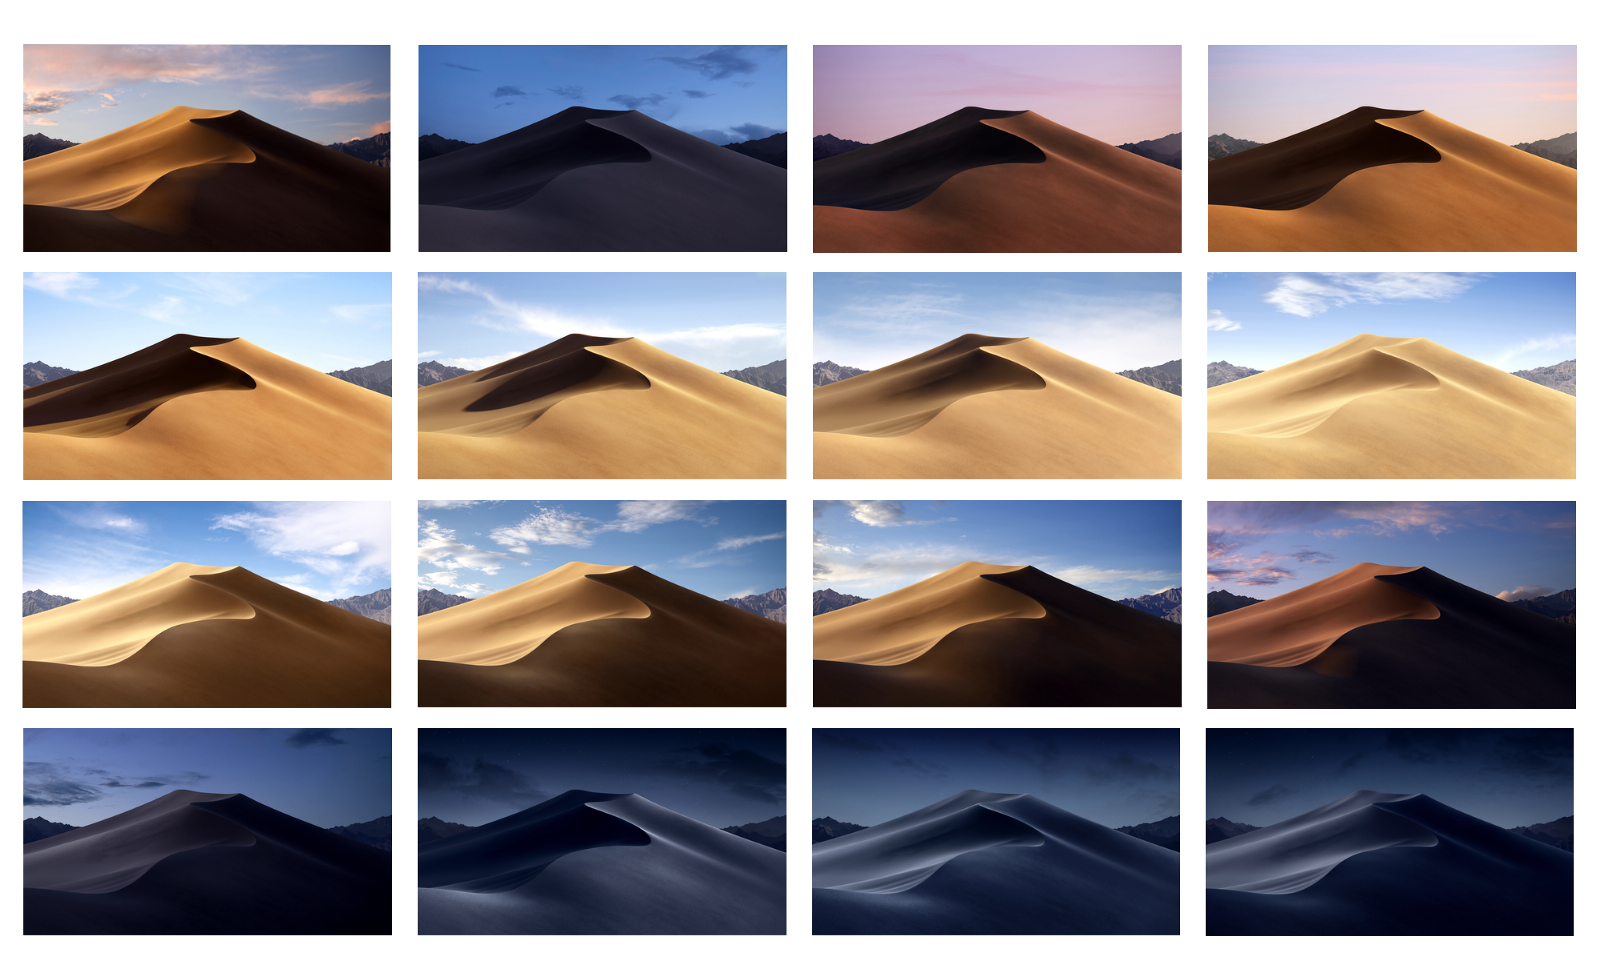 You can upload Mojave (Dynamic).heic file and you will see that in this single file there is 16 separate pictures taken in different day phase.